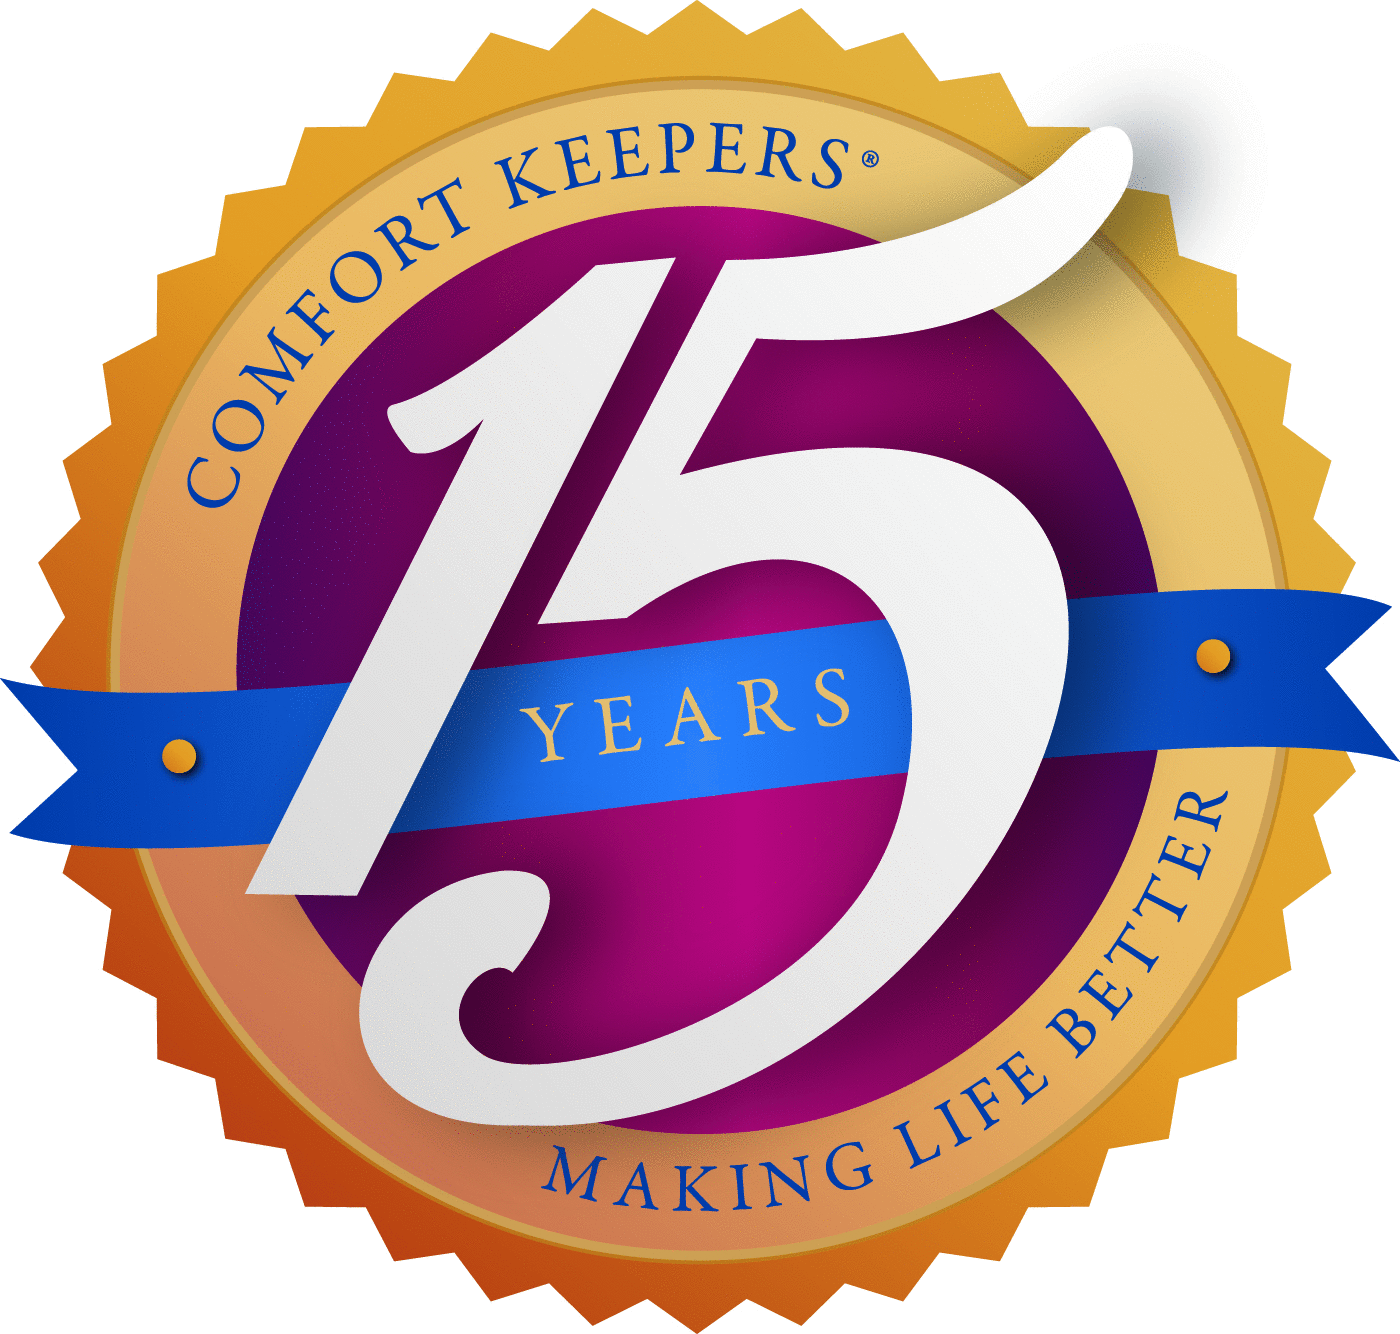 Comfort Keepers 15-Year Award